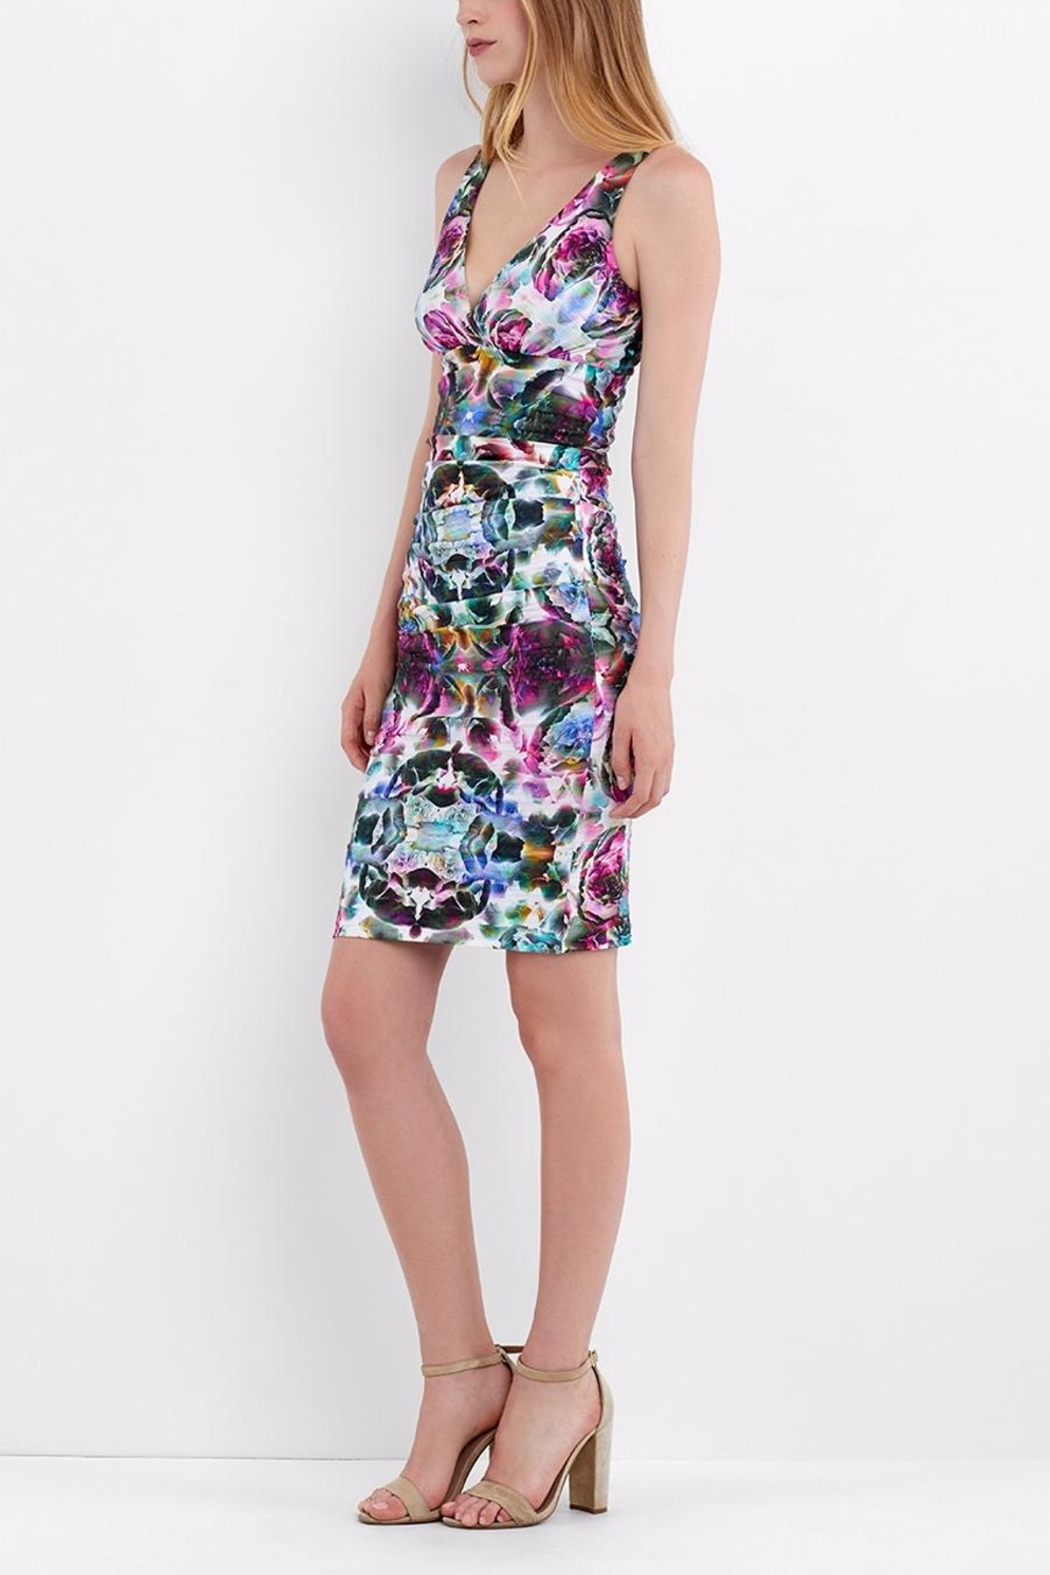 Artelier Nicole MIller Krista Fitted Dress - Front Full Image